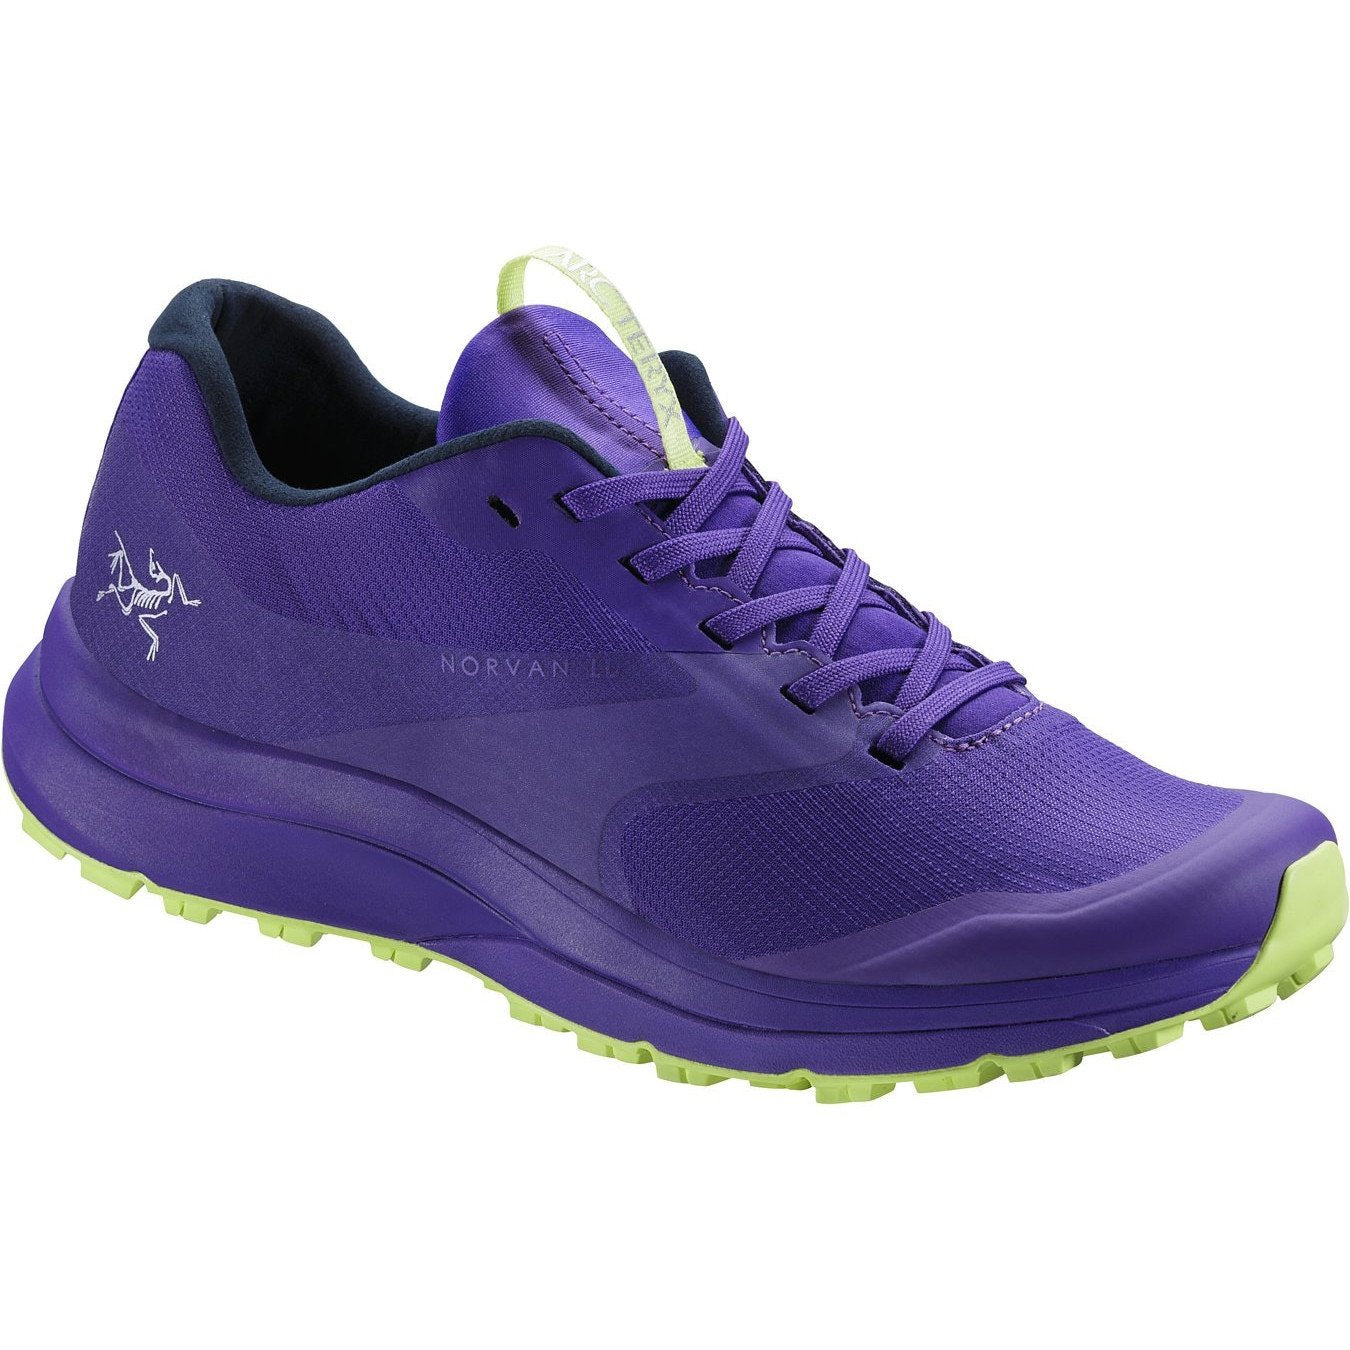 ArcTeryx Norvan LD GTX Womens trail running shoe, in purple colour, outer side view